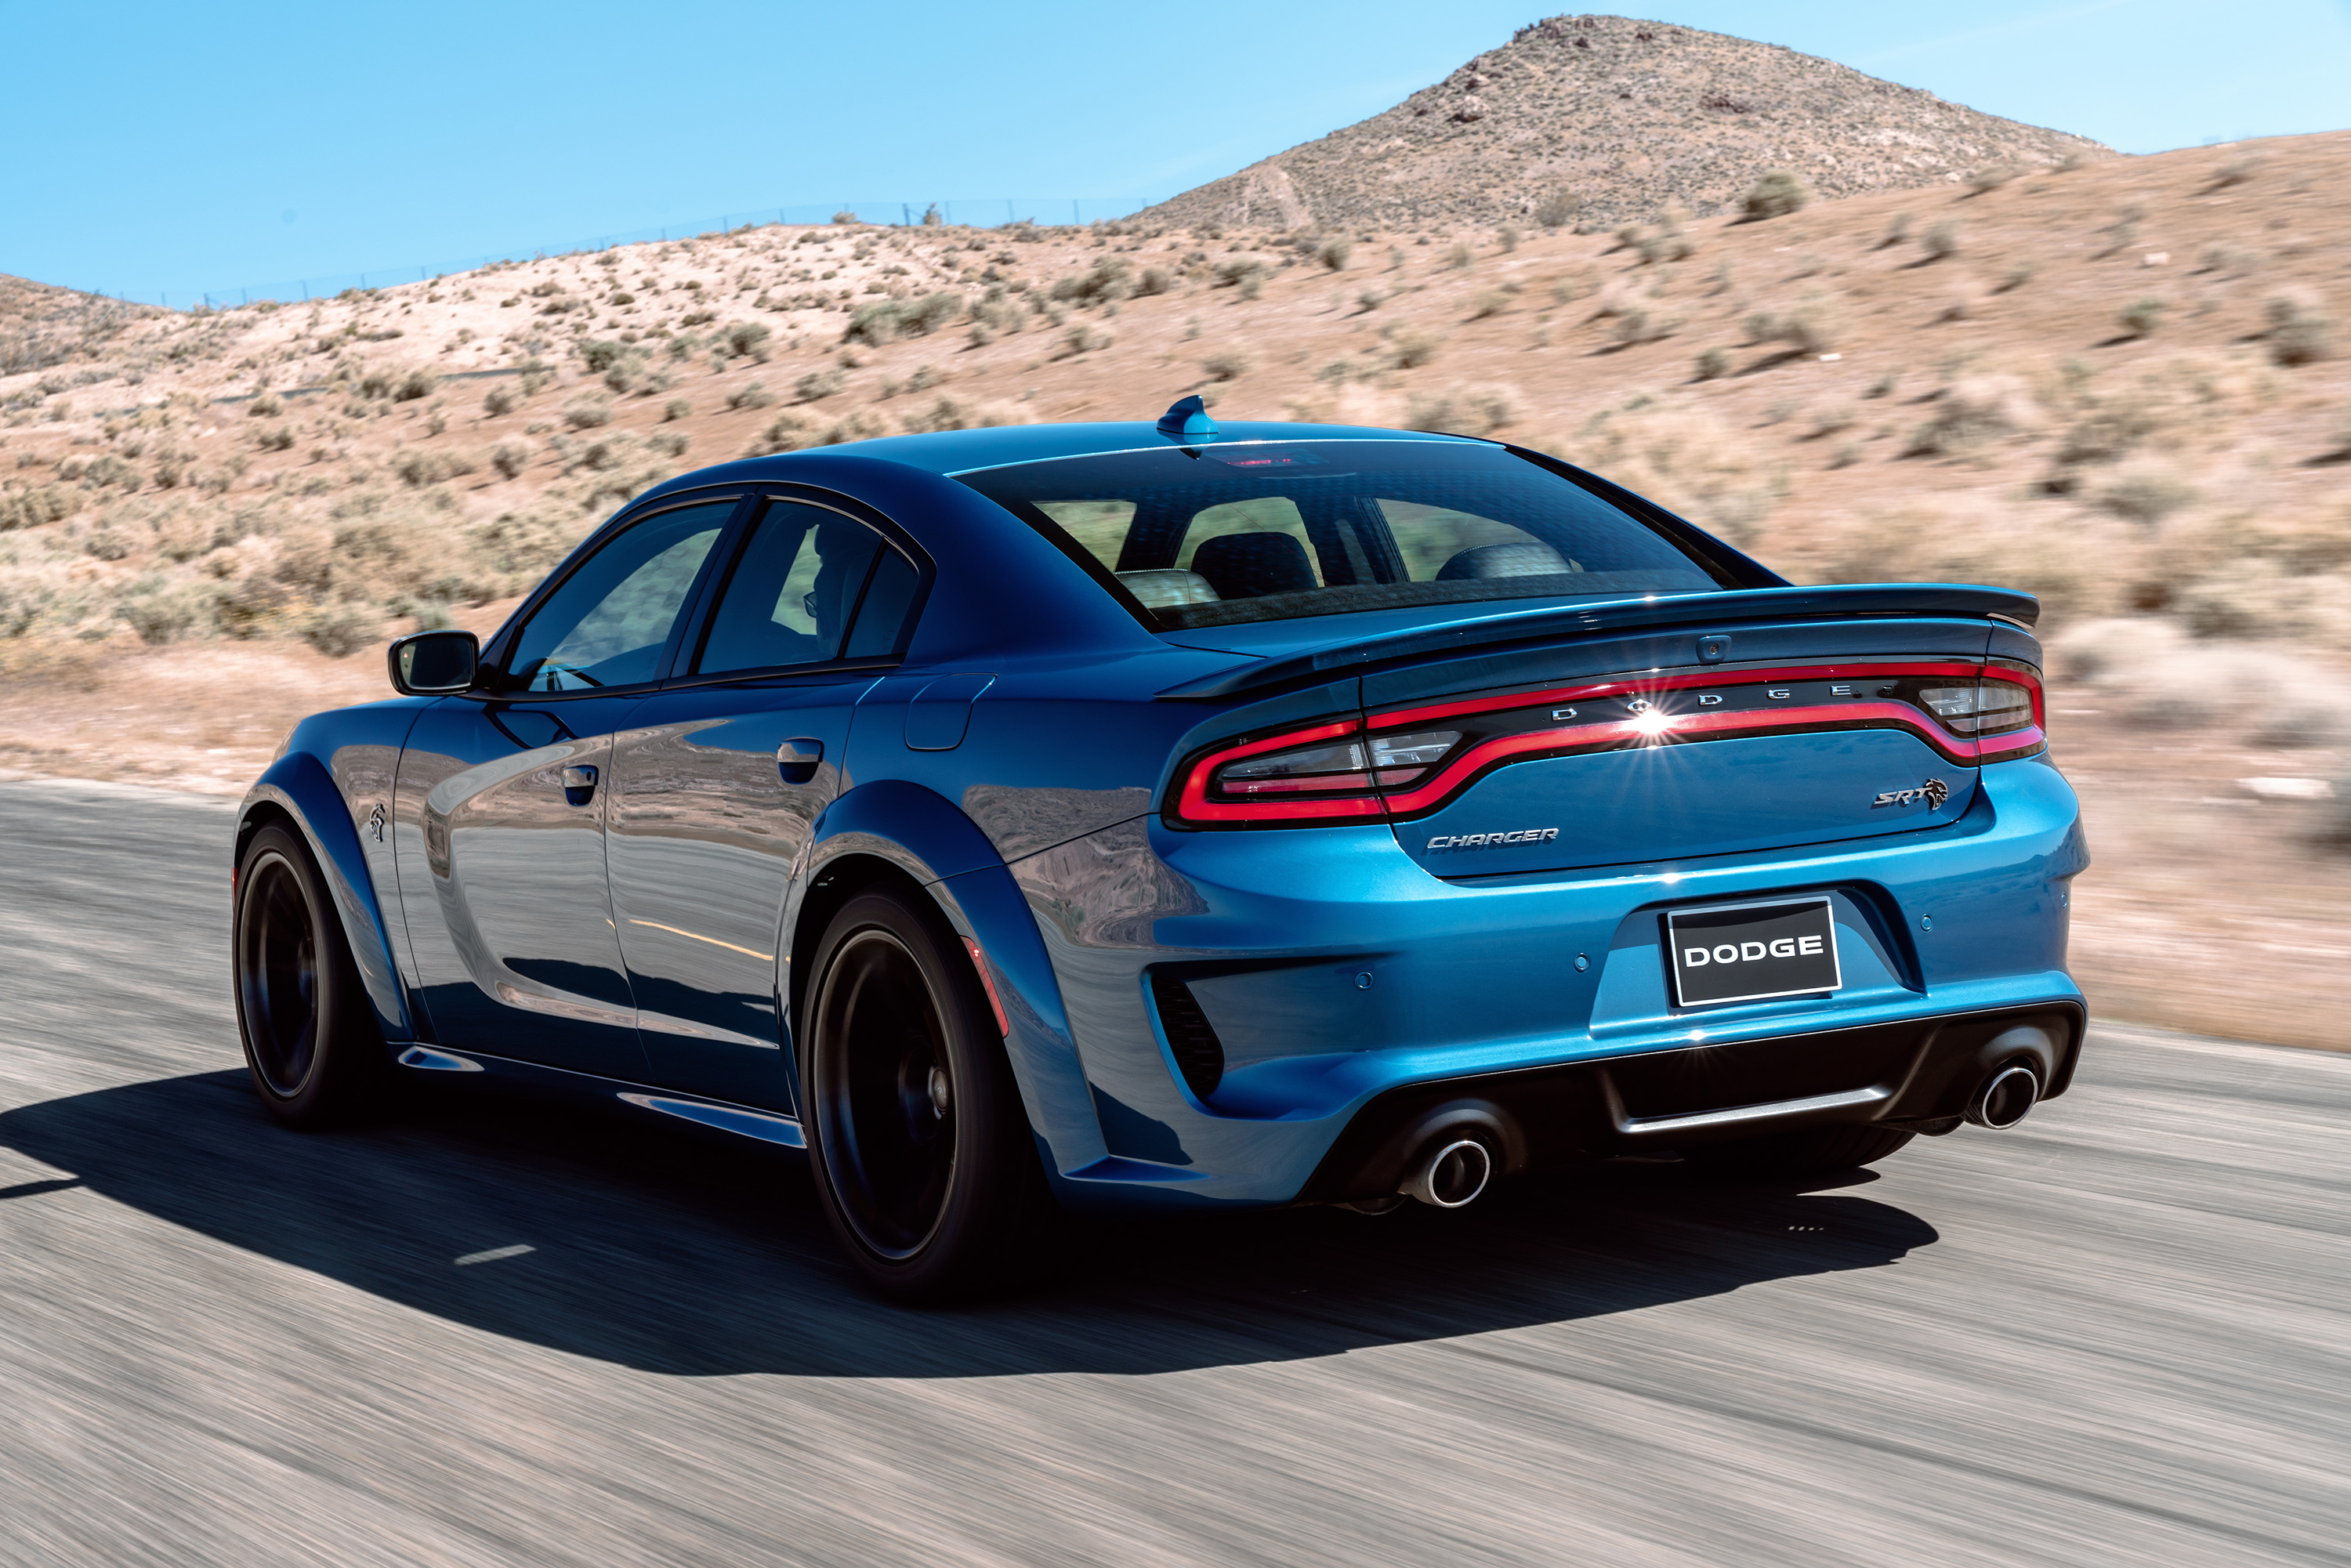 Dodge Charger Widebody blue rear.jpg